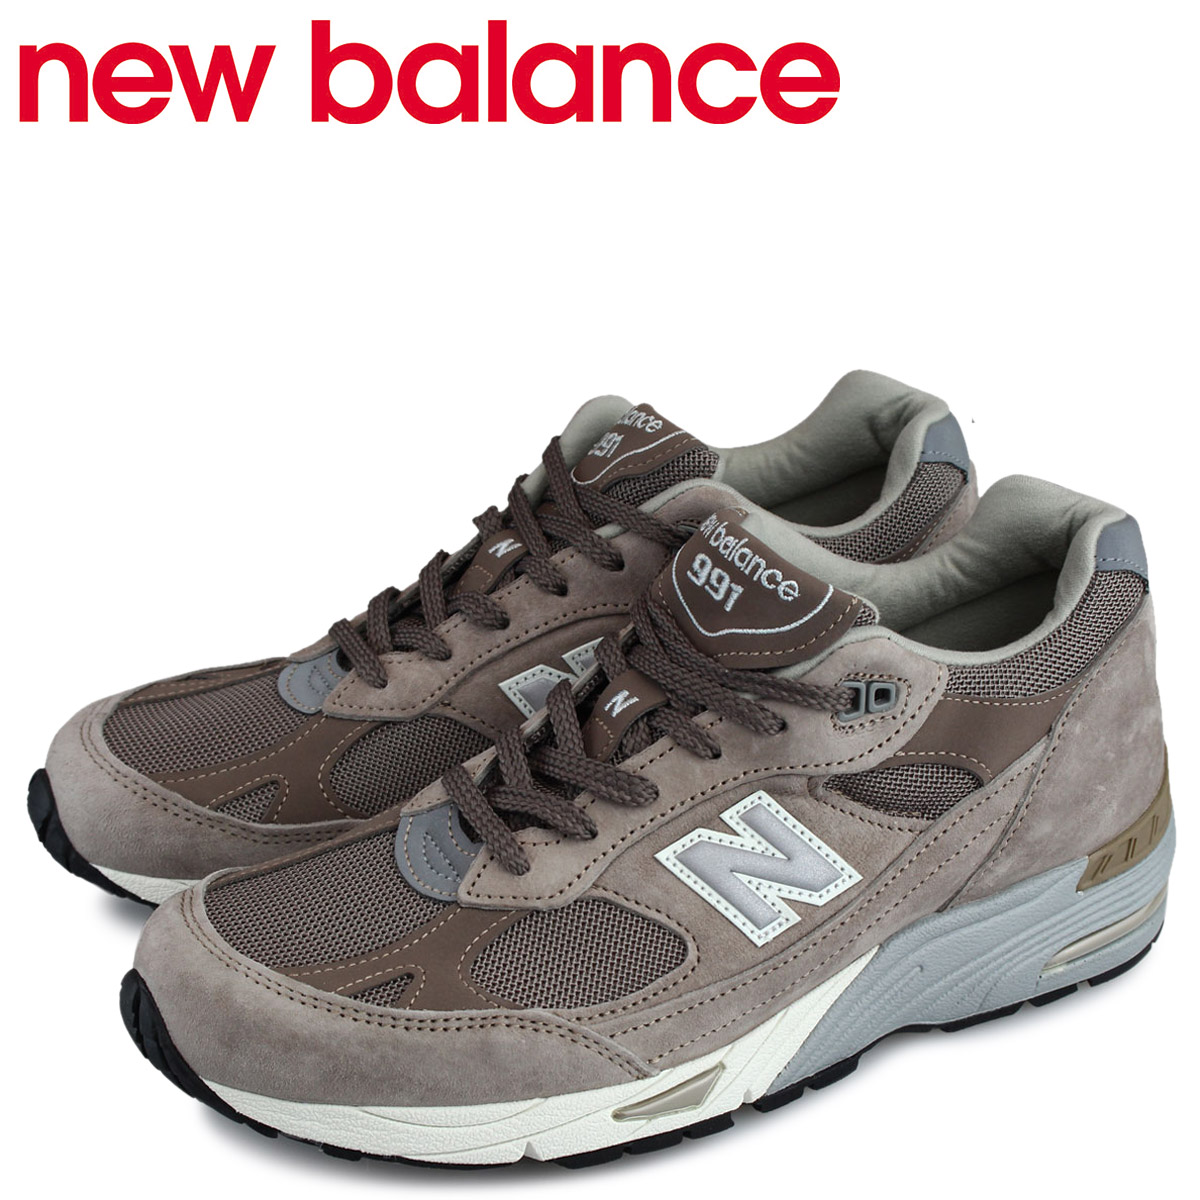 new balance uk online shop